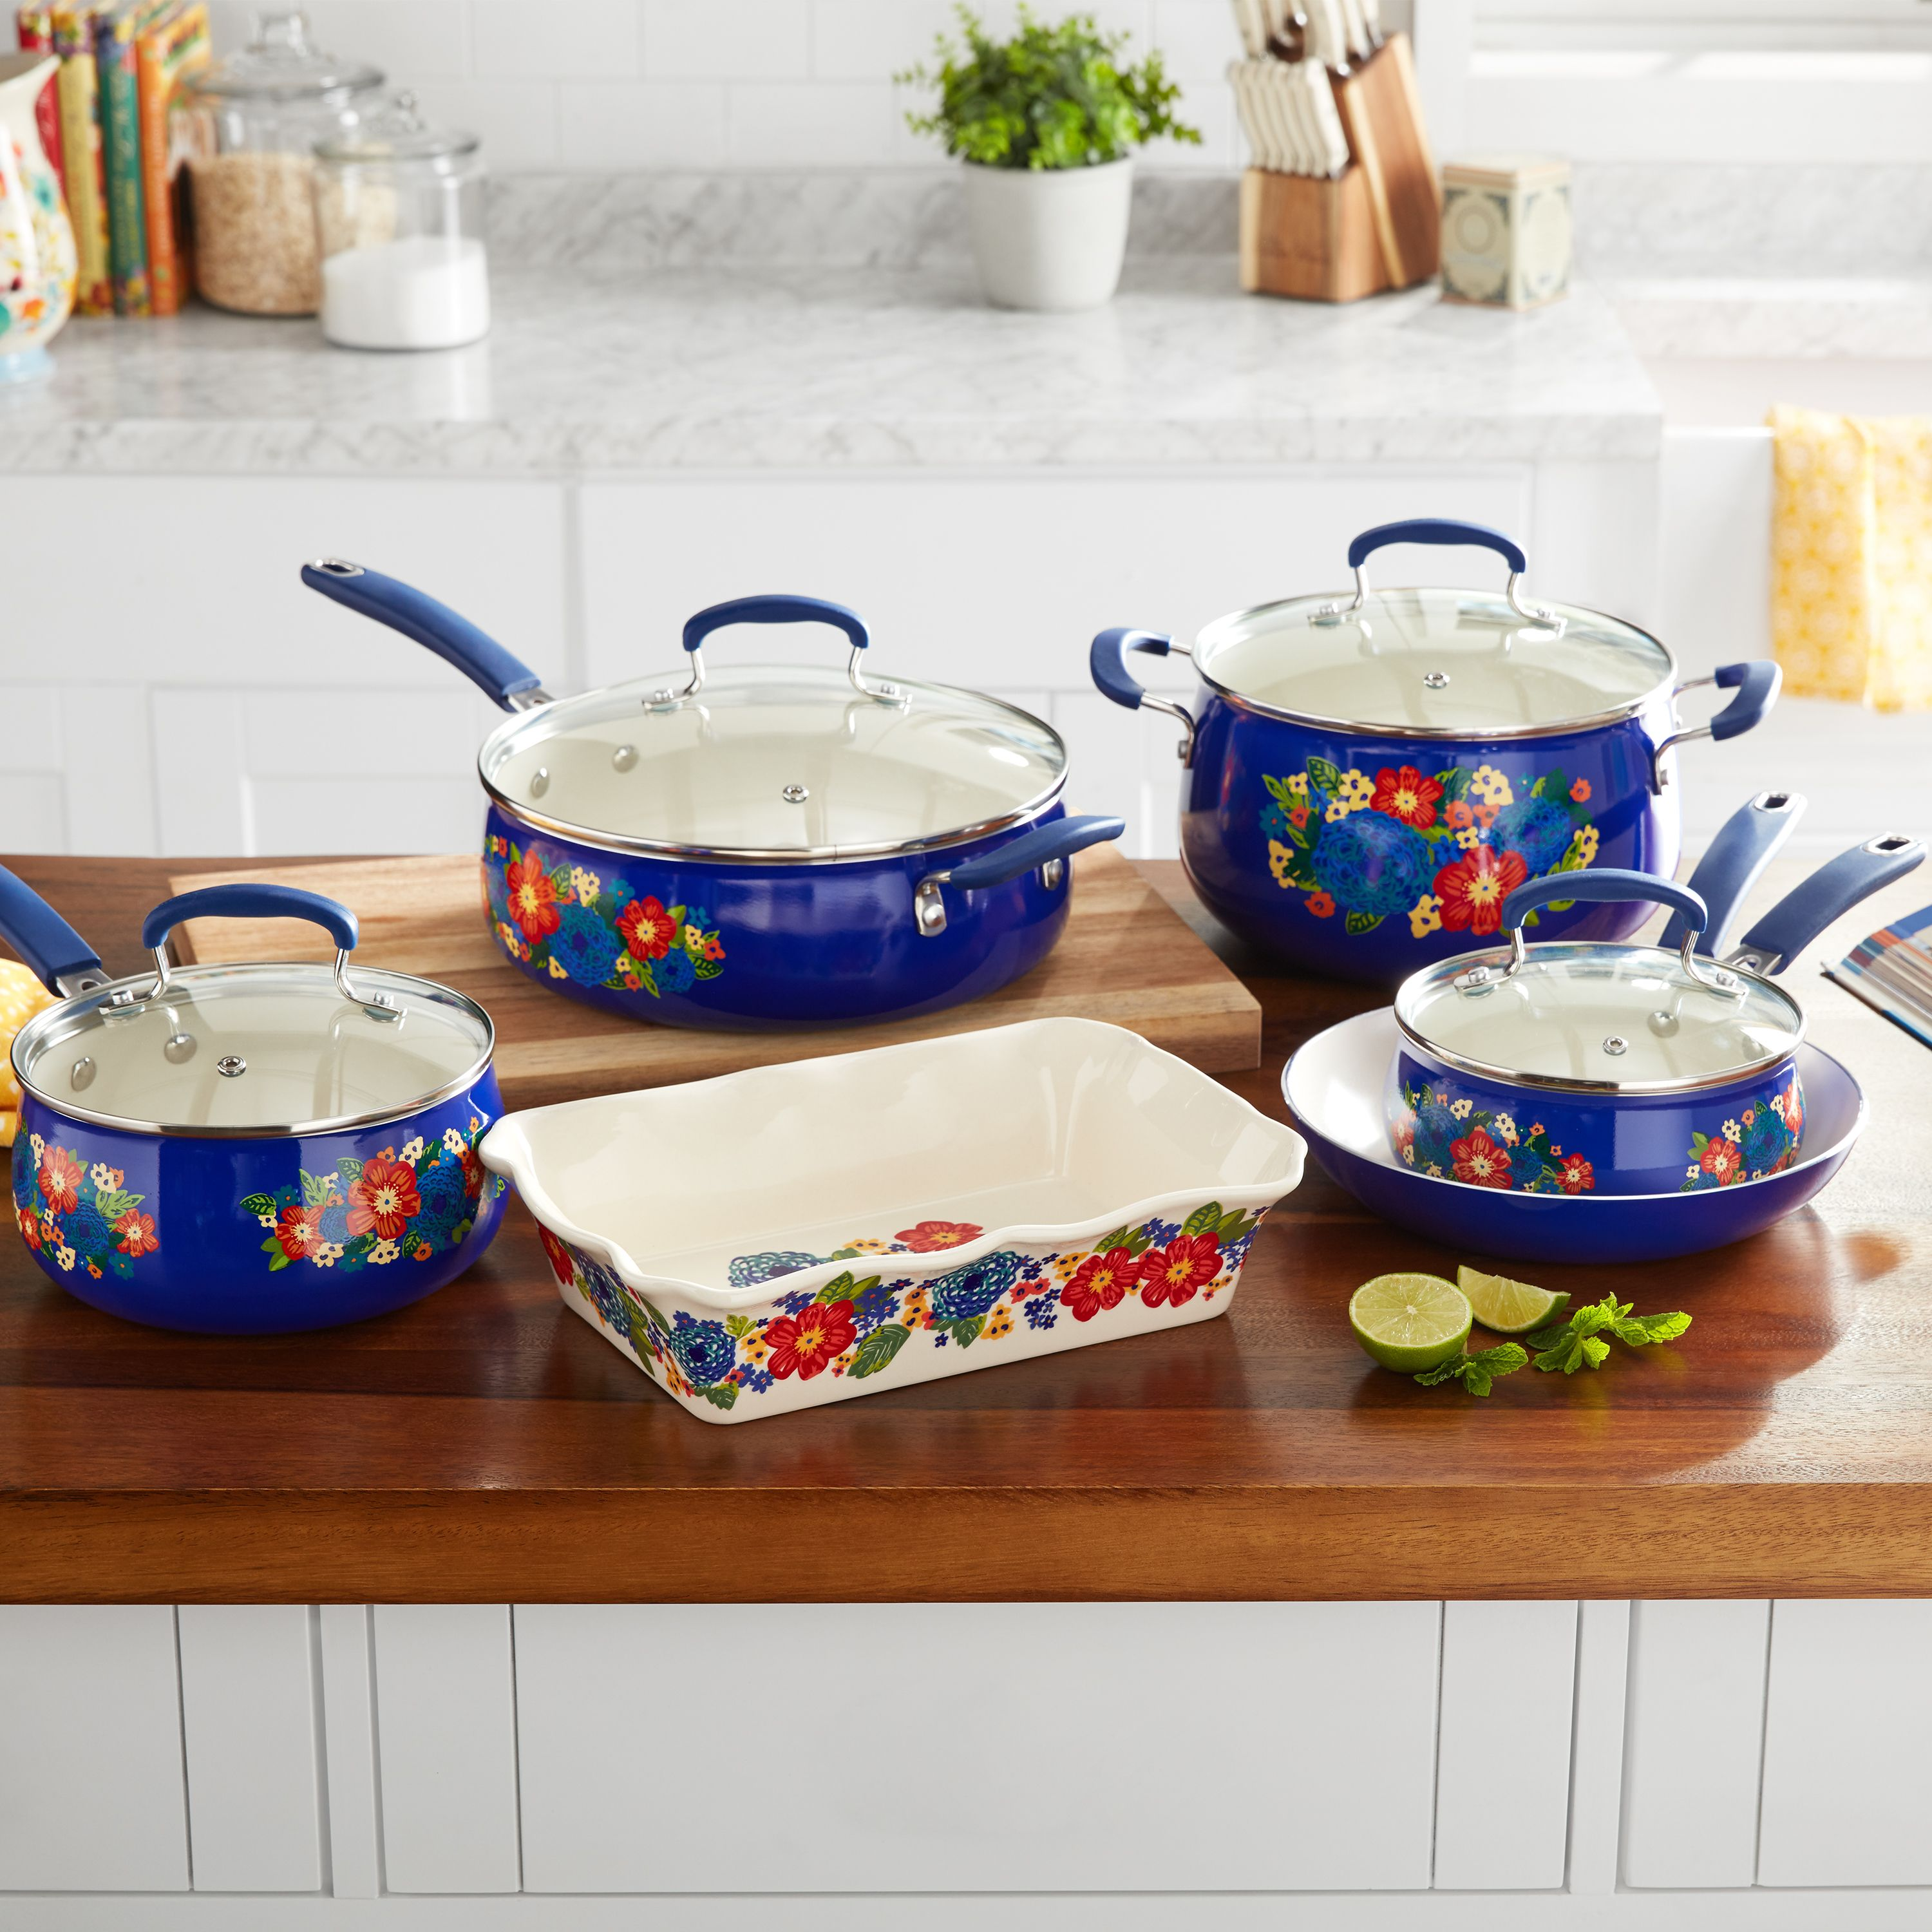 Best Ceramic Cookware Sets Of 2021 Top Ceramic Pans For Every Kitchen